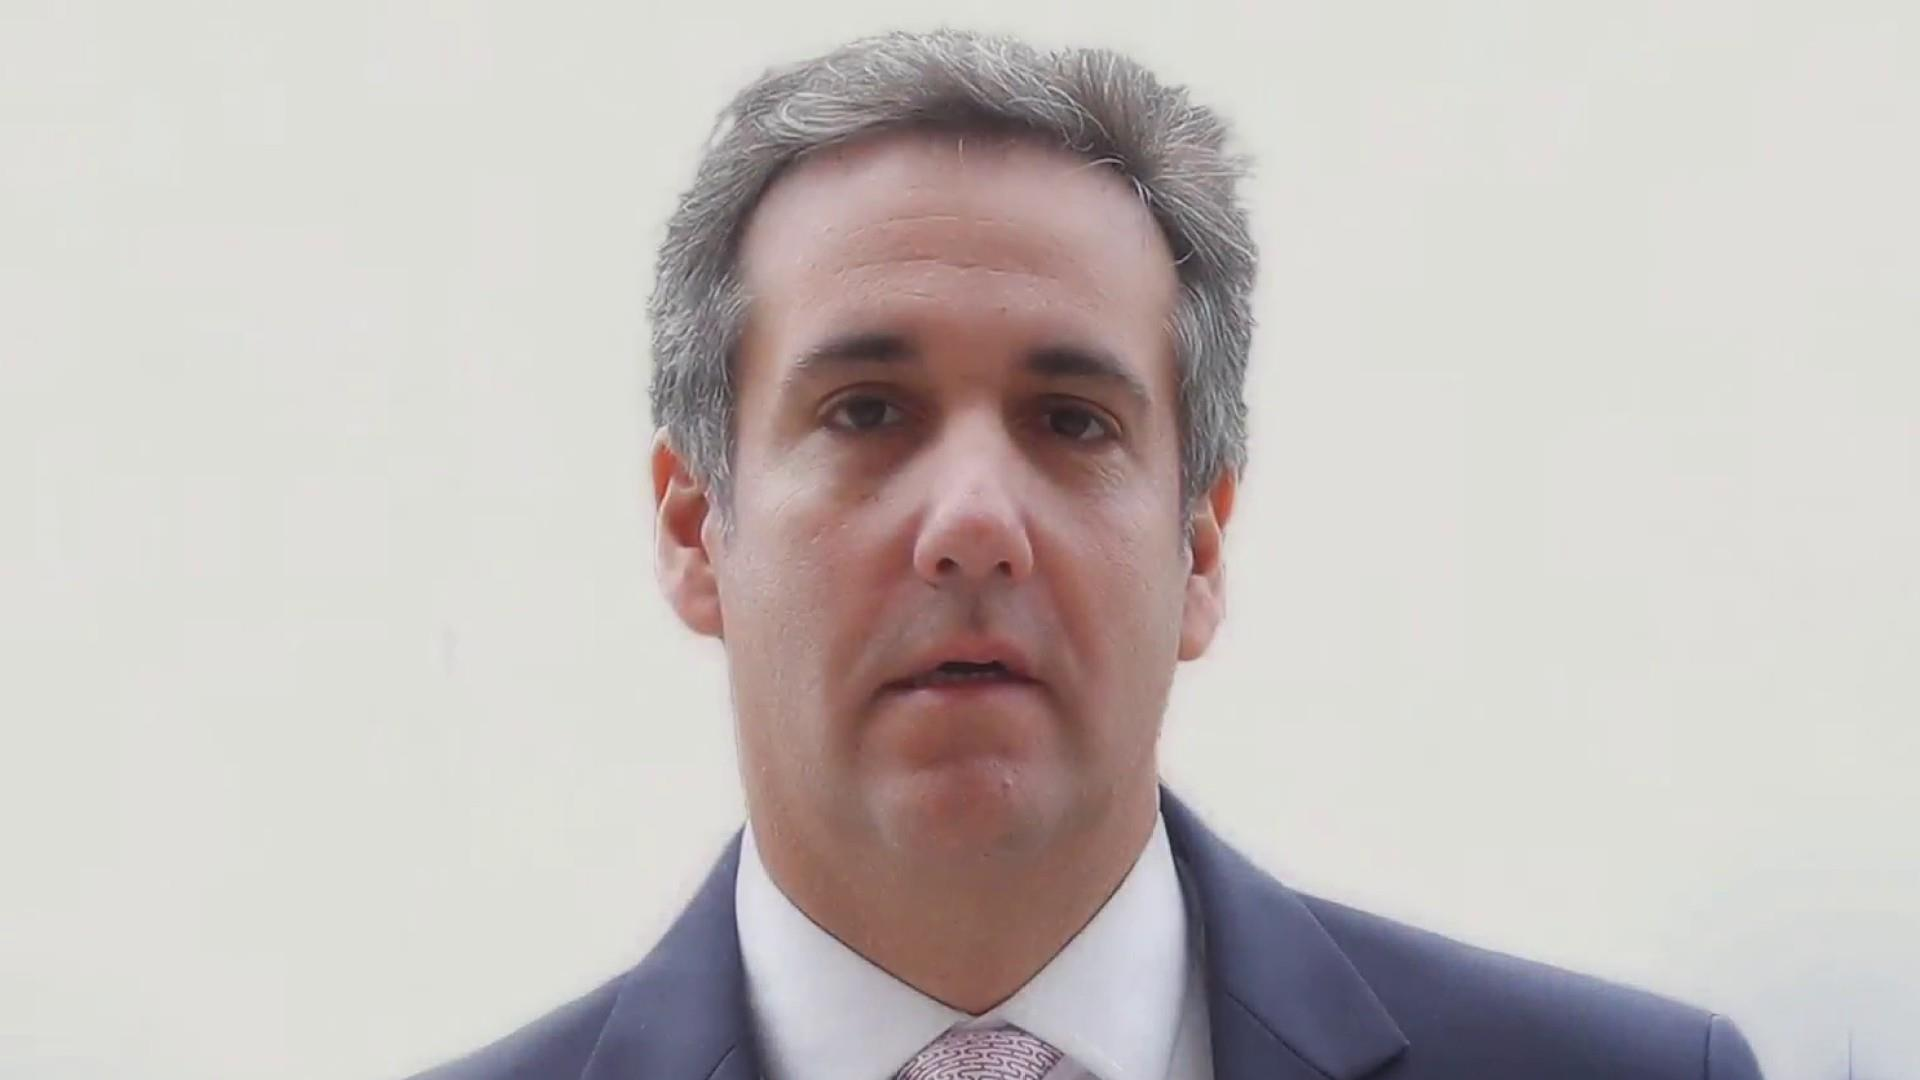 Feds monitored Trump lawyer Michael Cohen's phones